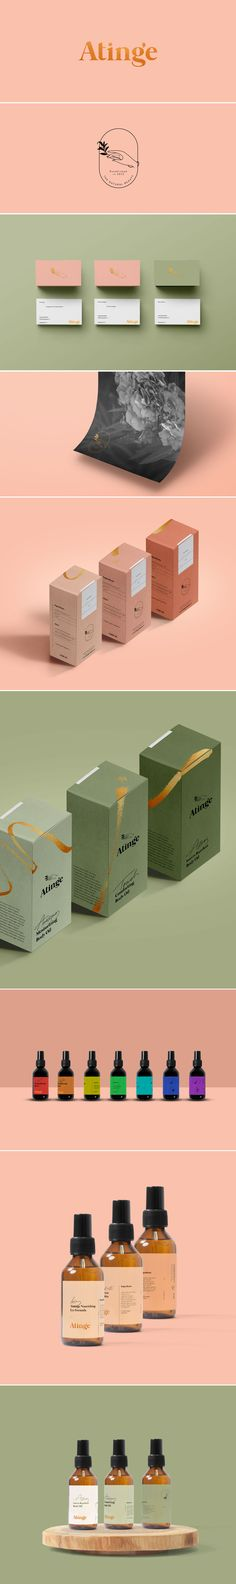 Sophisticated and charming branding for Atinge by Cocorrina